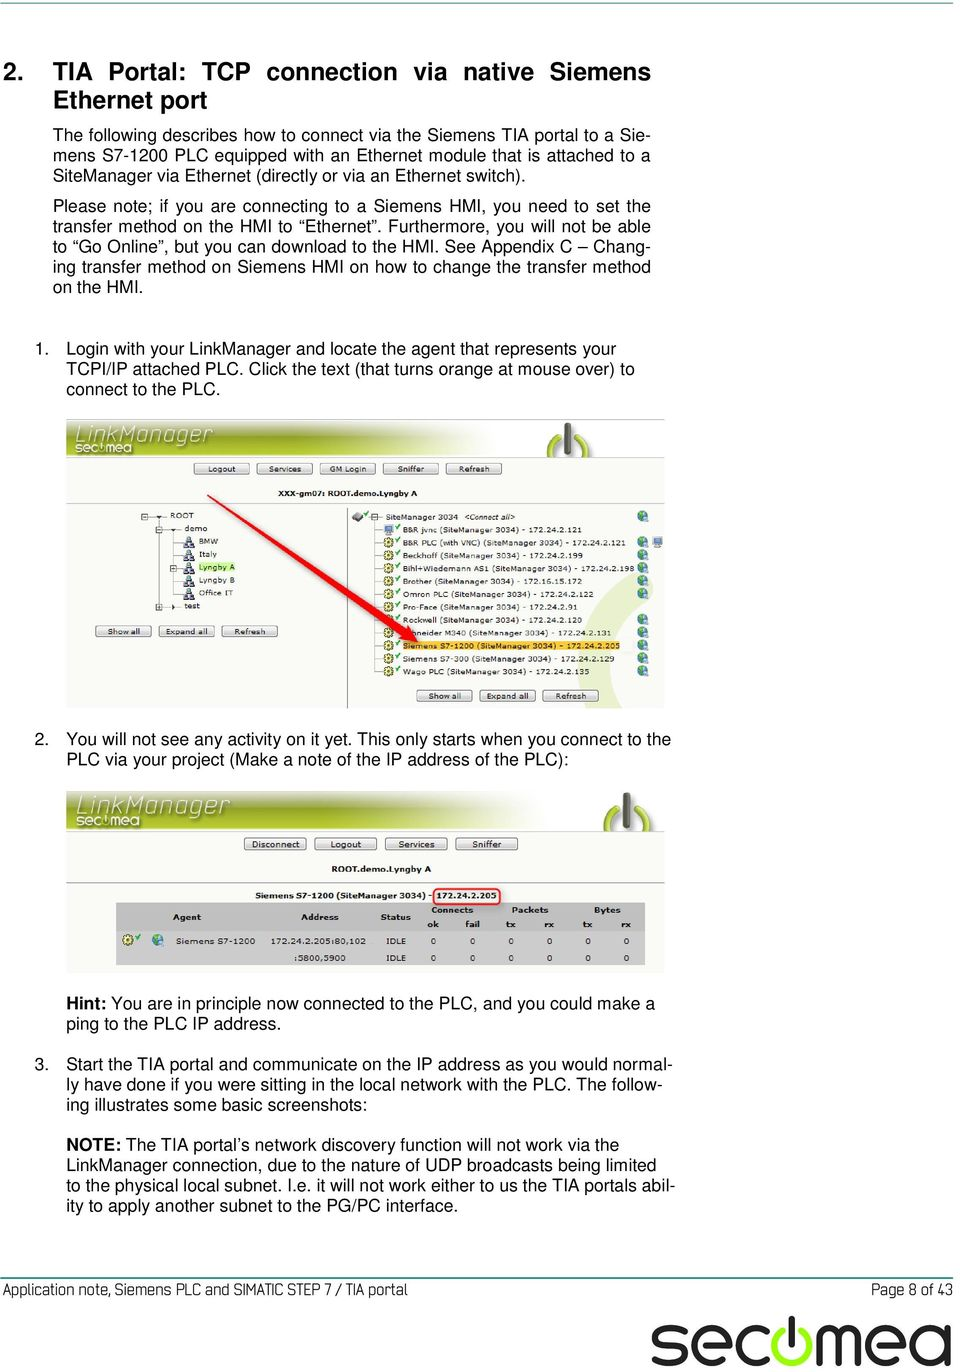 Application Note Siemens PLC and SIMATIC STEP 7 / TIA Portal